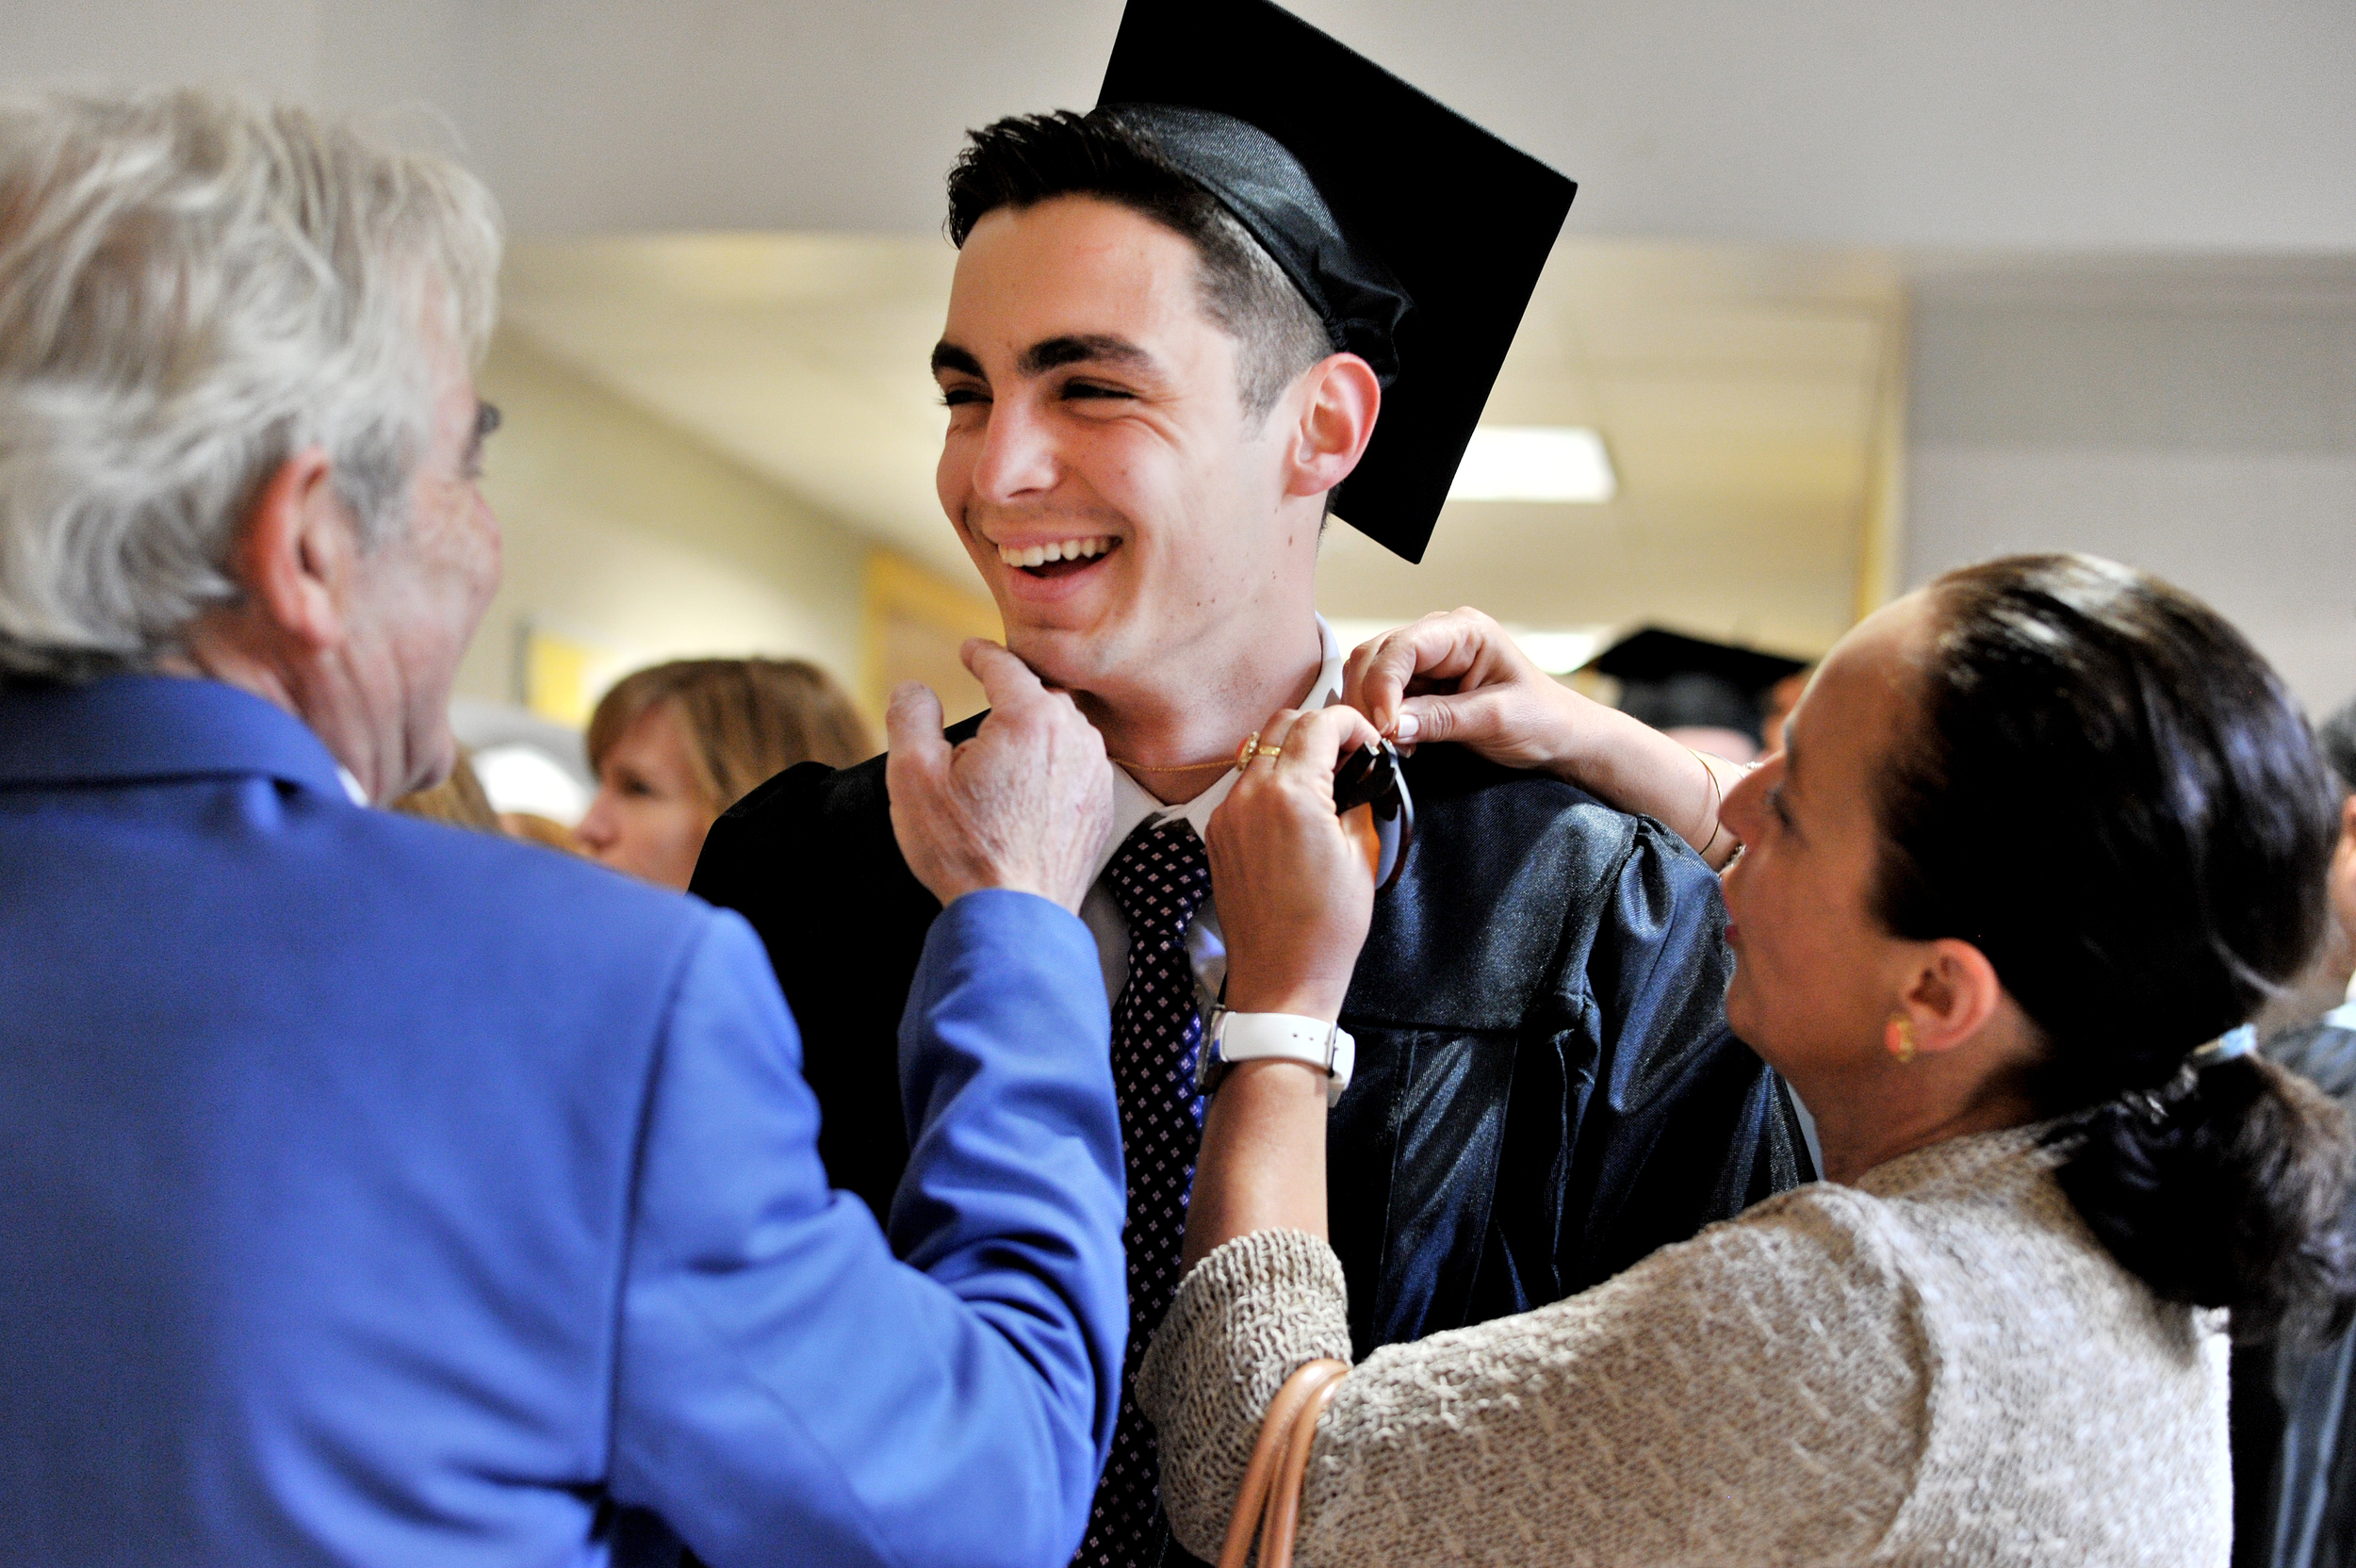 Juan Soria, 18, is greeted by his parents, Manuel and Magdalena, prior to the Berks Catholic High School graduation on June 8, 2016, at Alvernia University in Reading, PA. (Sarah Stier: Reading Eagle)